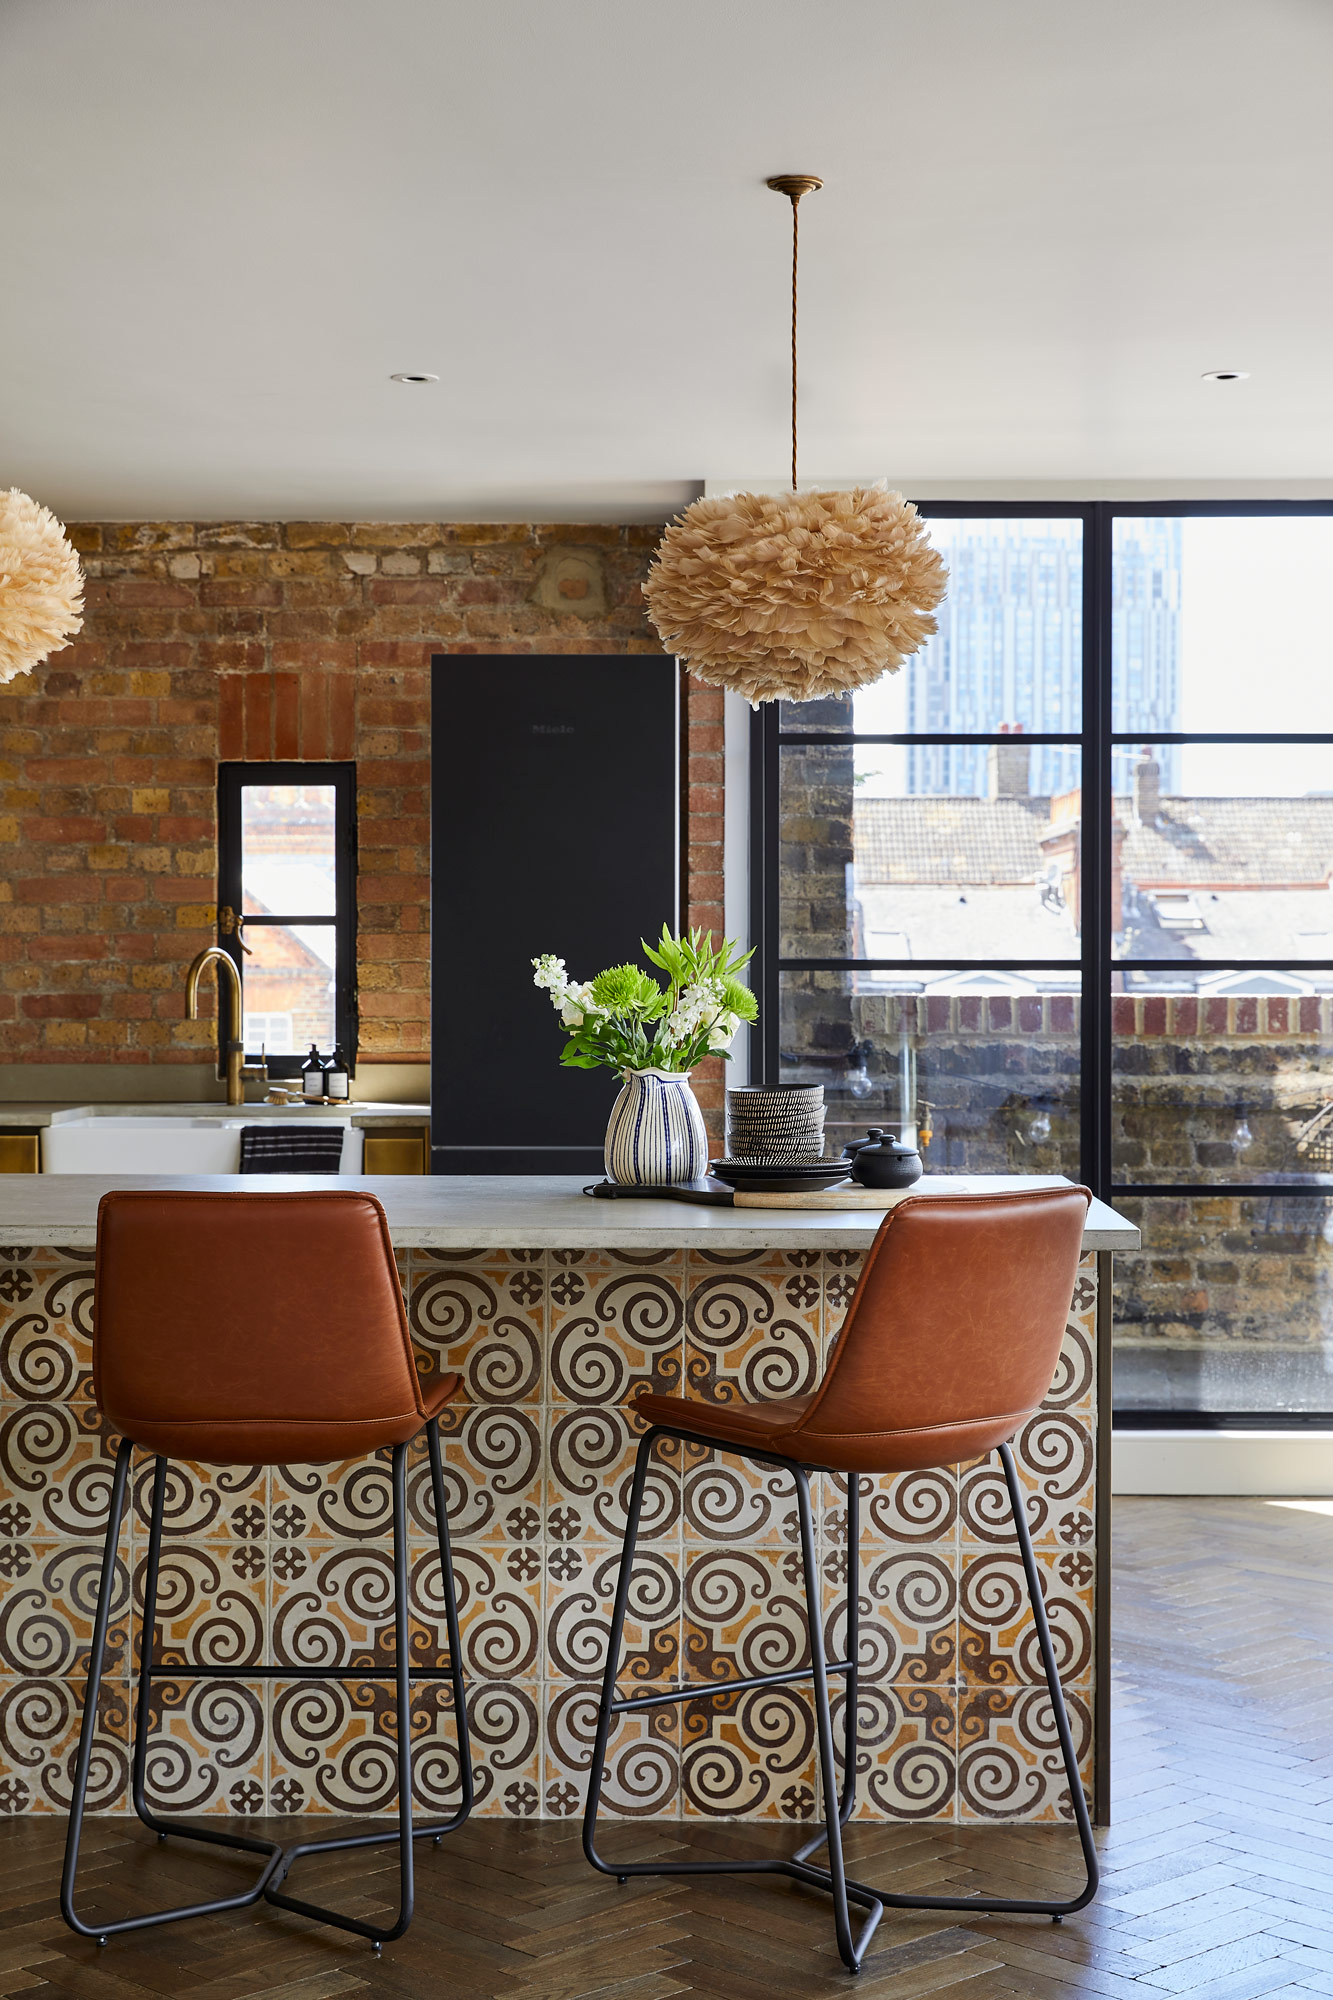 Brown leather barstools sit under metal kitchen with reclaimed tile kickboard